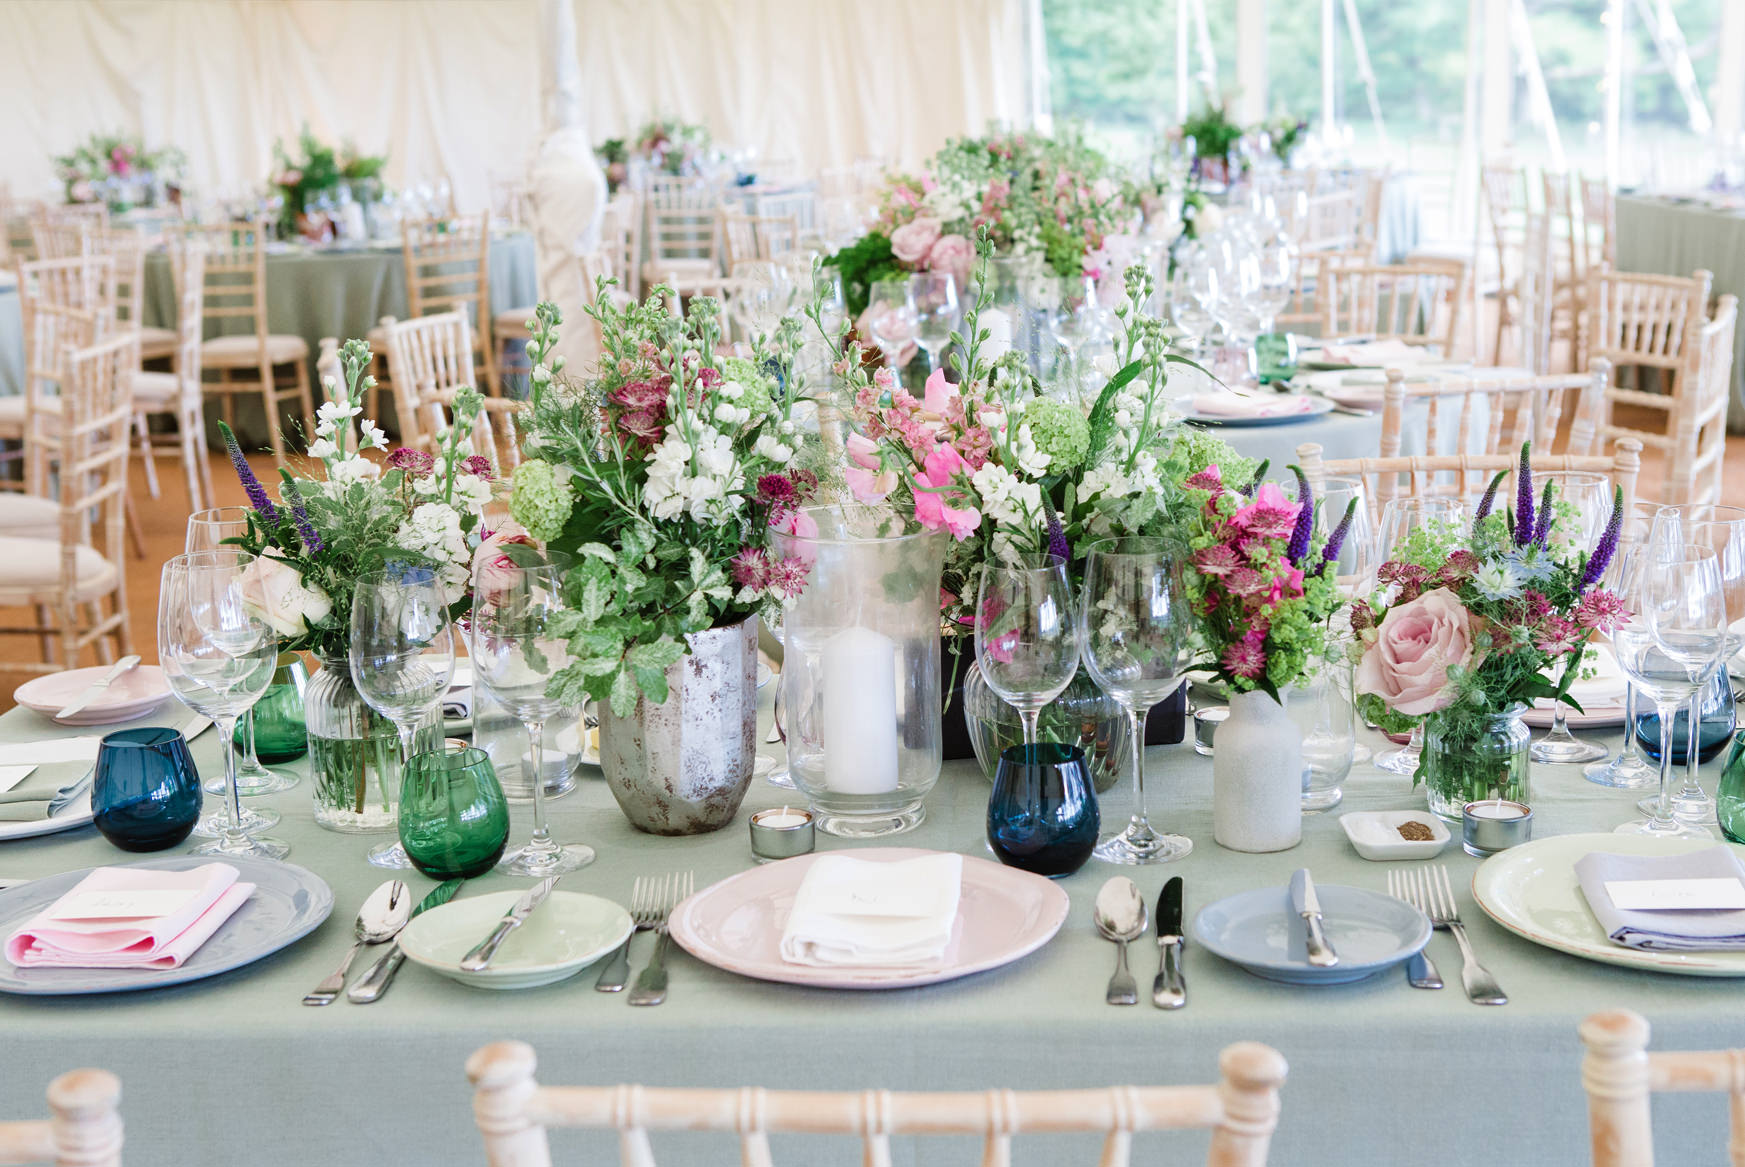 Pastel tabslescape, marquee wedding